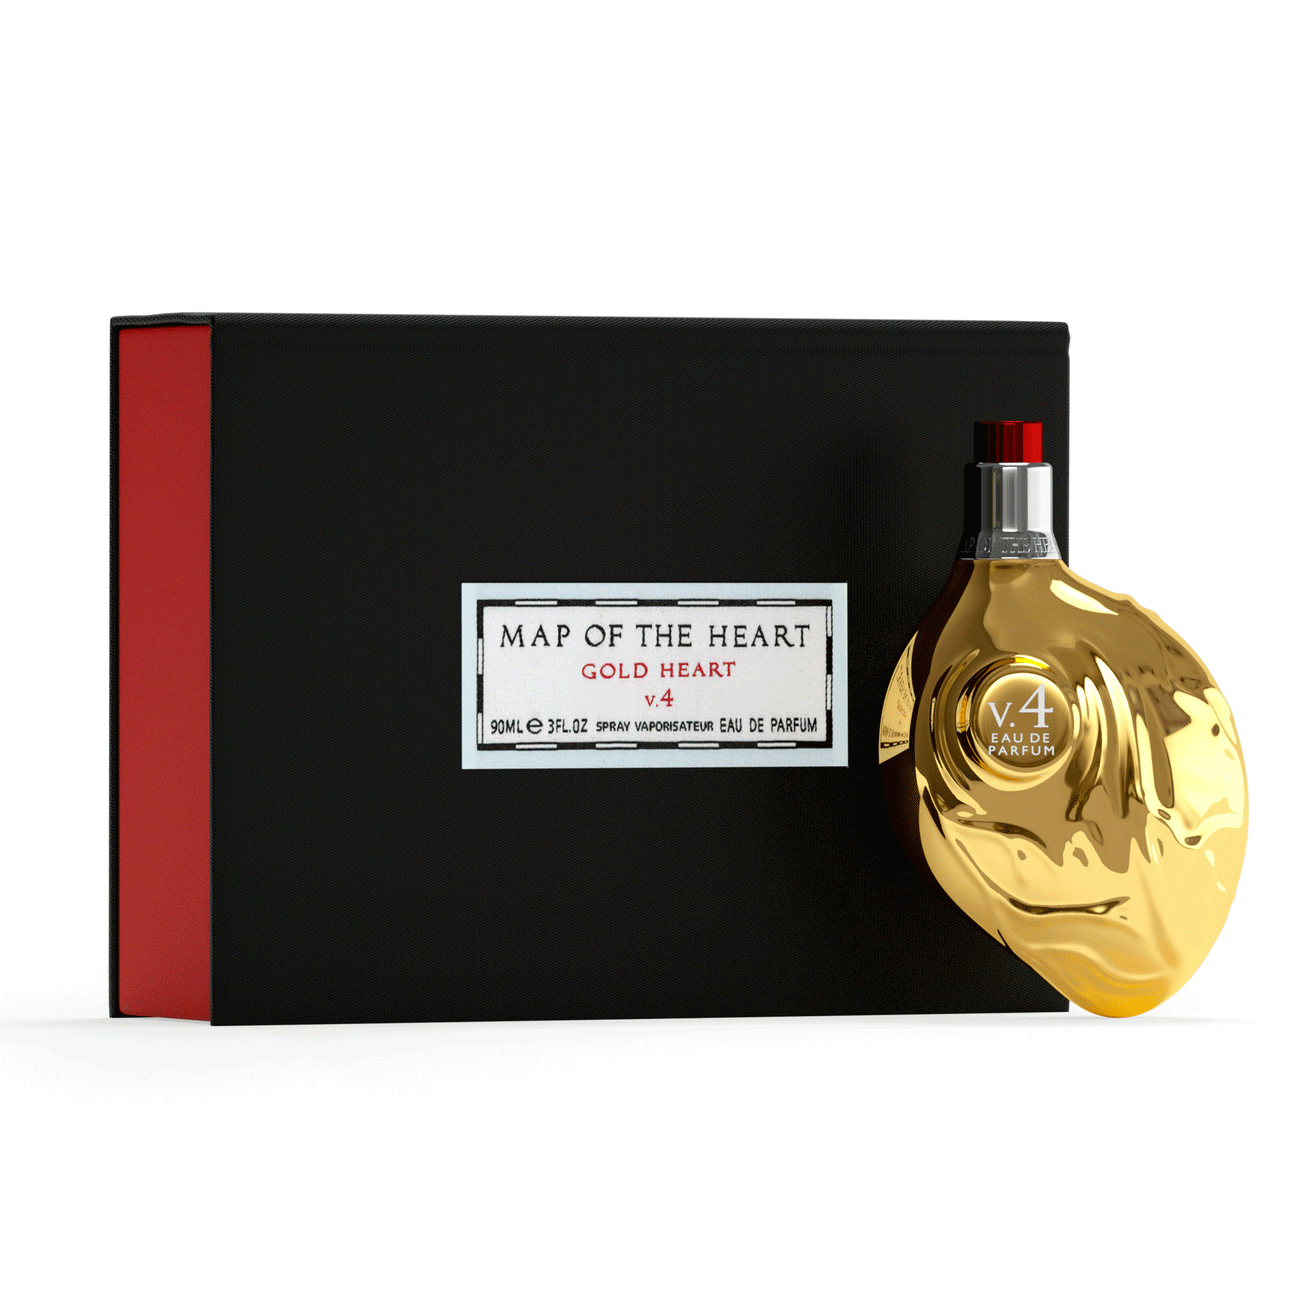 Map of the Heart Gold heart perfume V.4